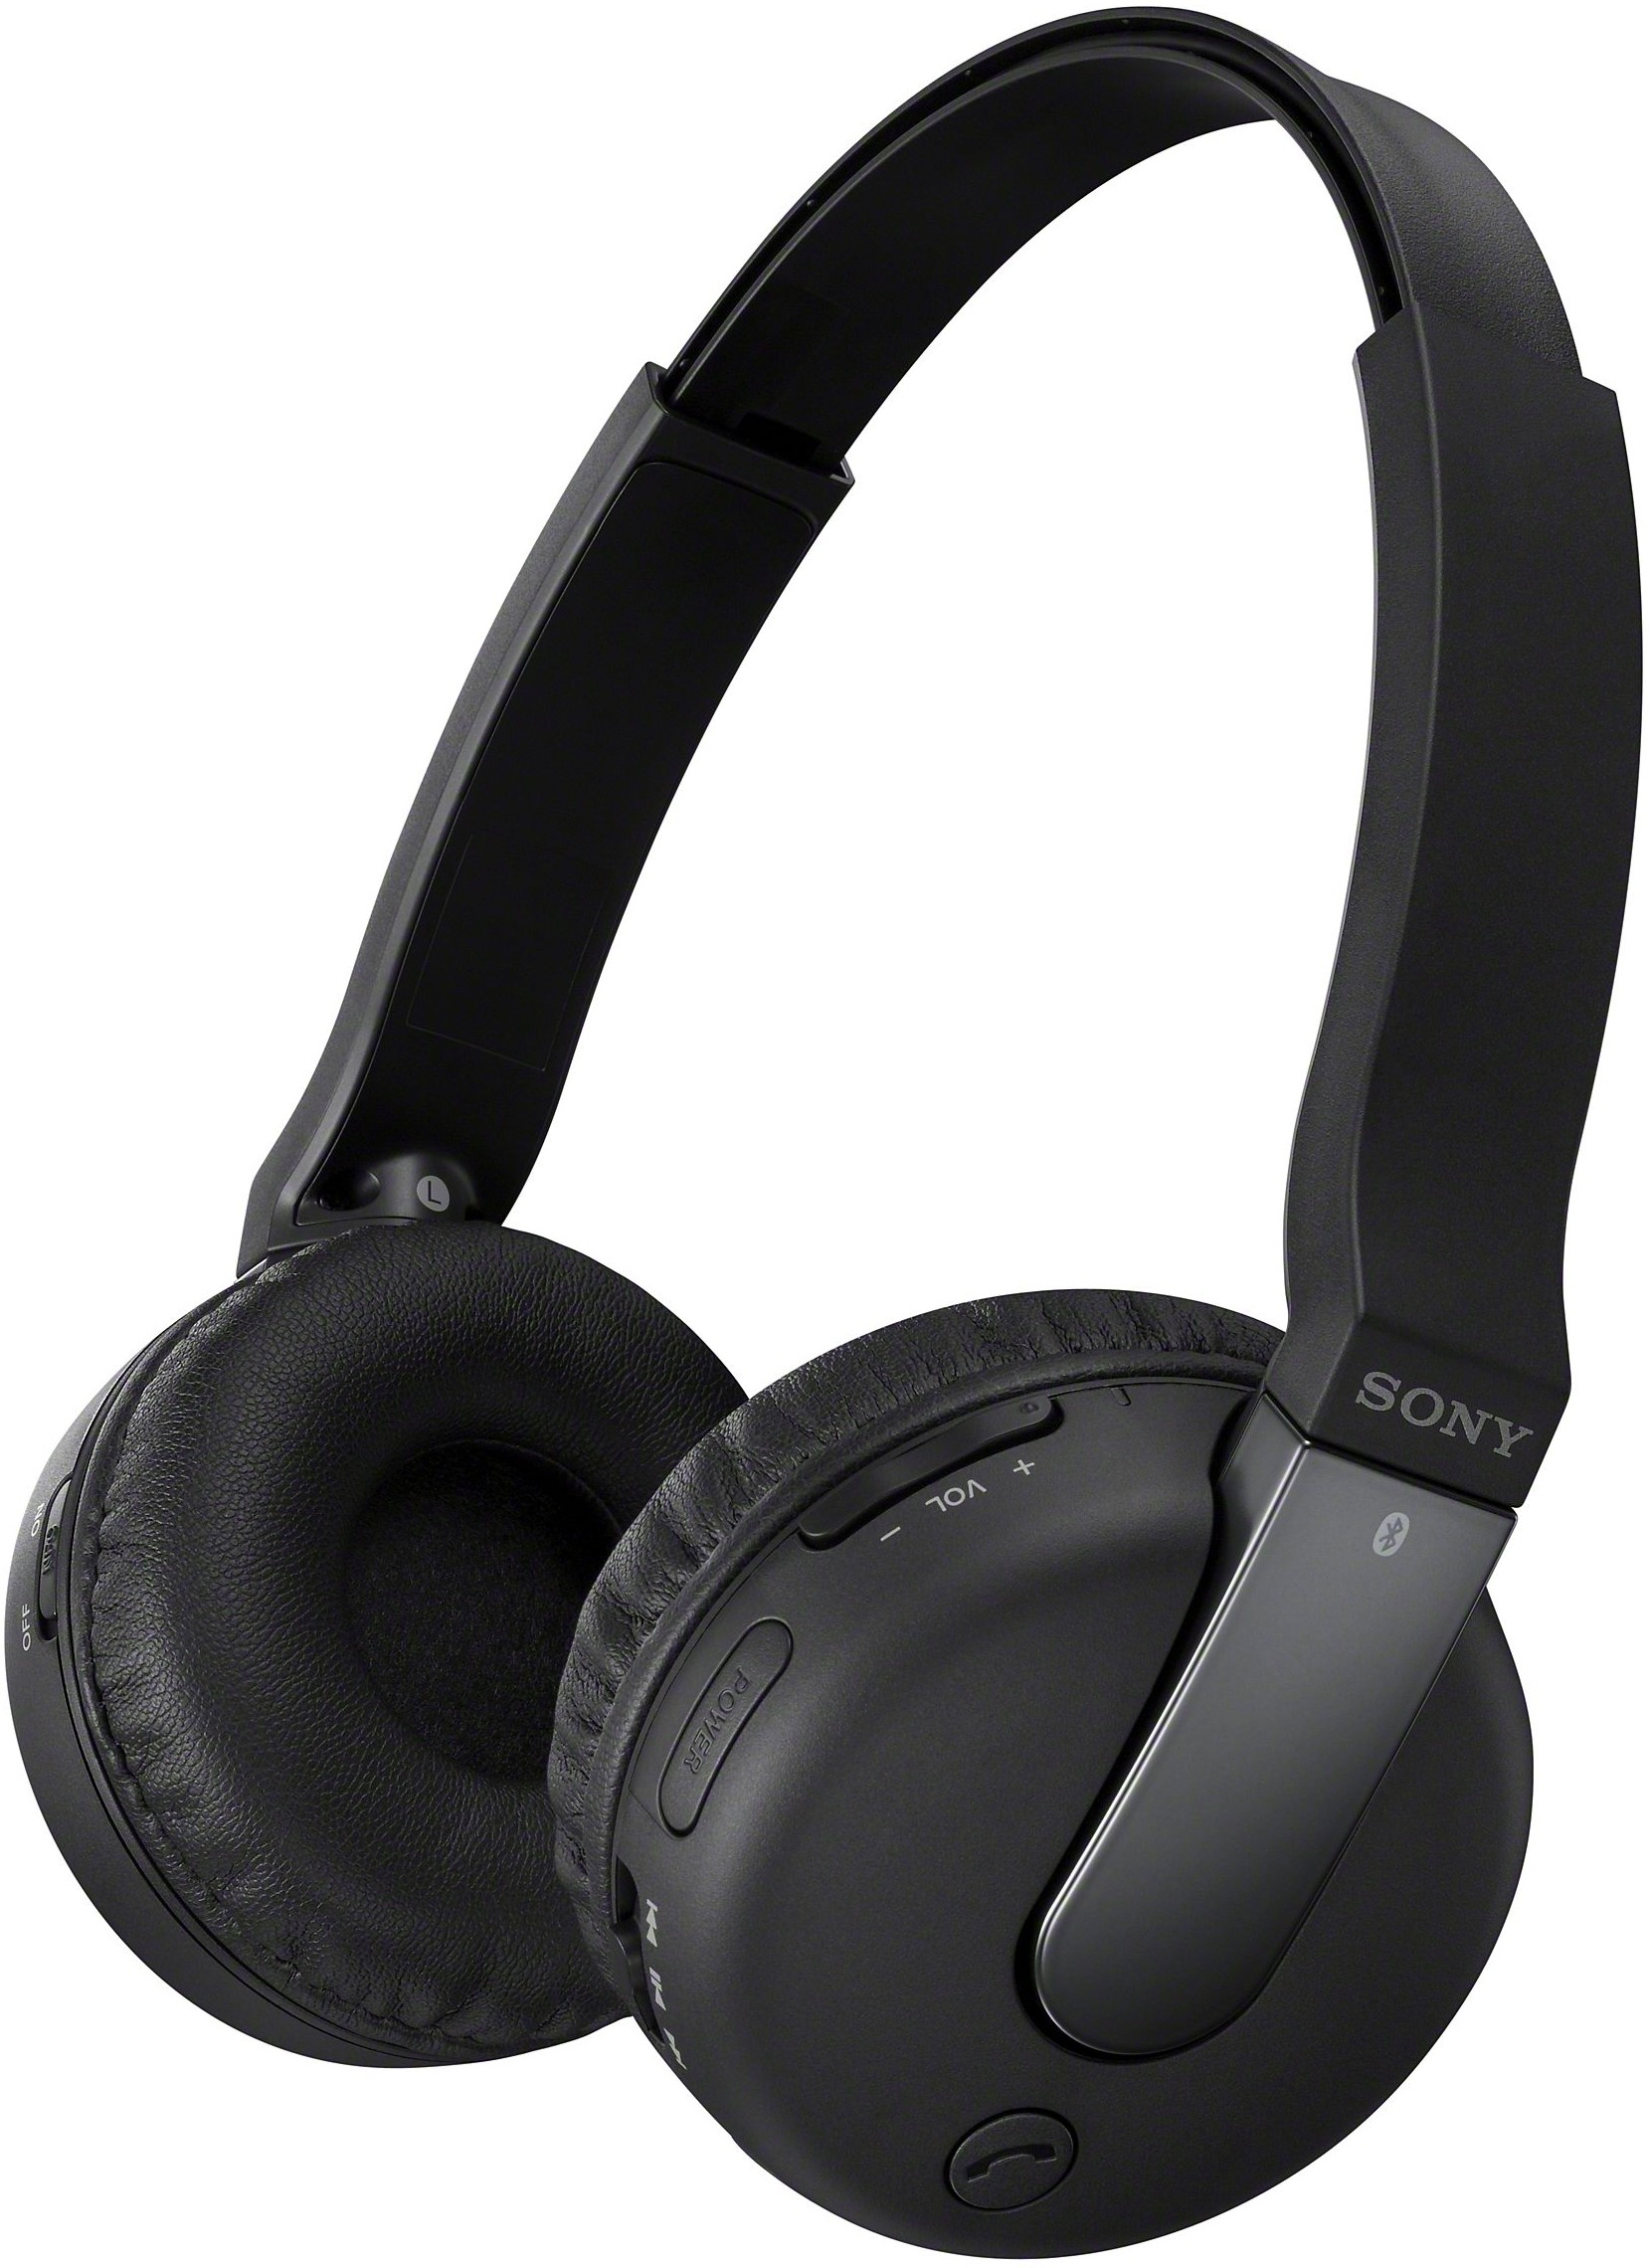 Sony DR-BTN200 BCE Wireless Headset With Mic(Black)